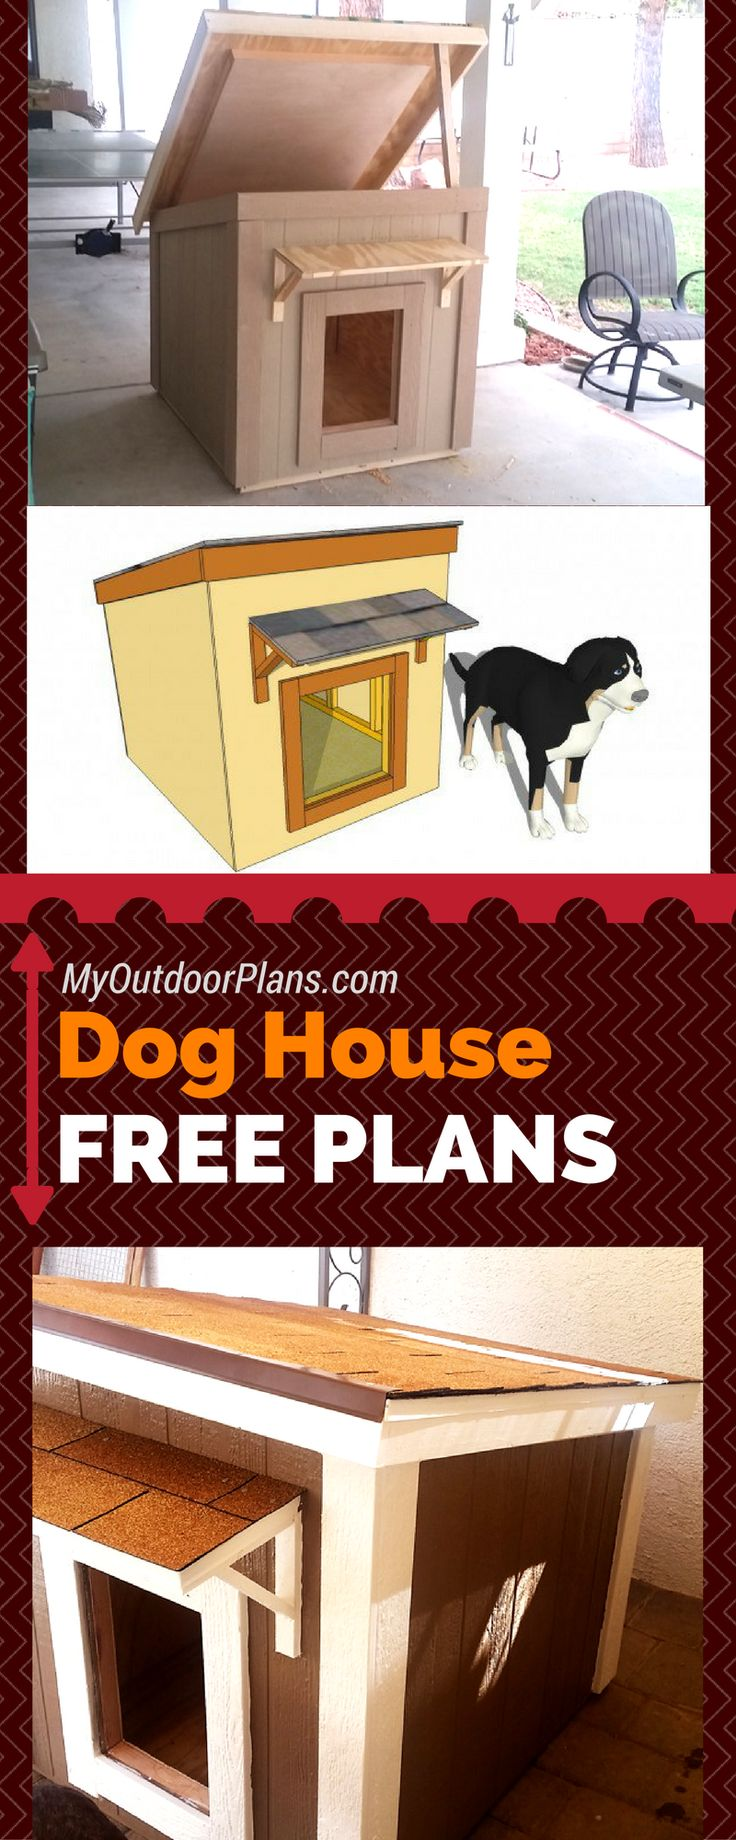 Free plans for you to build a large dog house! Step by step instructions and free dog house plans so you can get the job done quickly! #diy myoutdoorplans.com